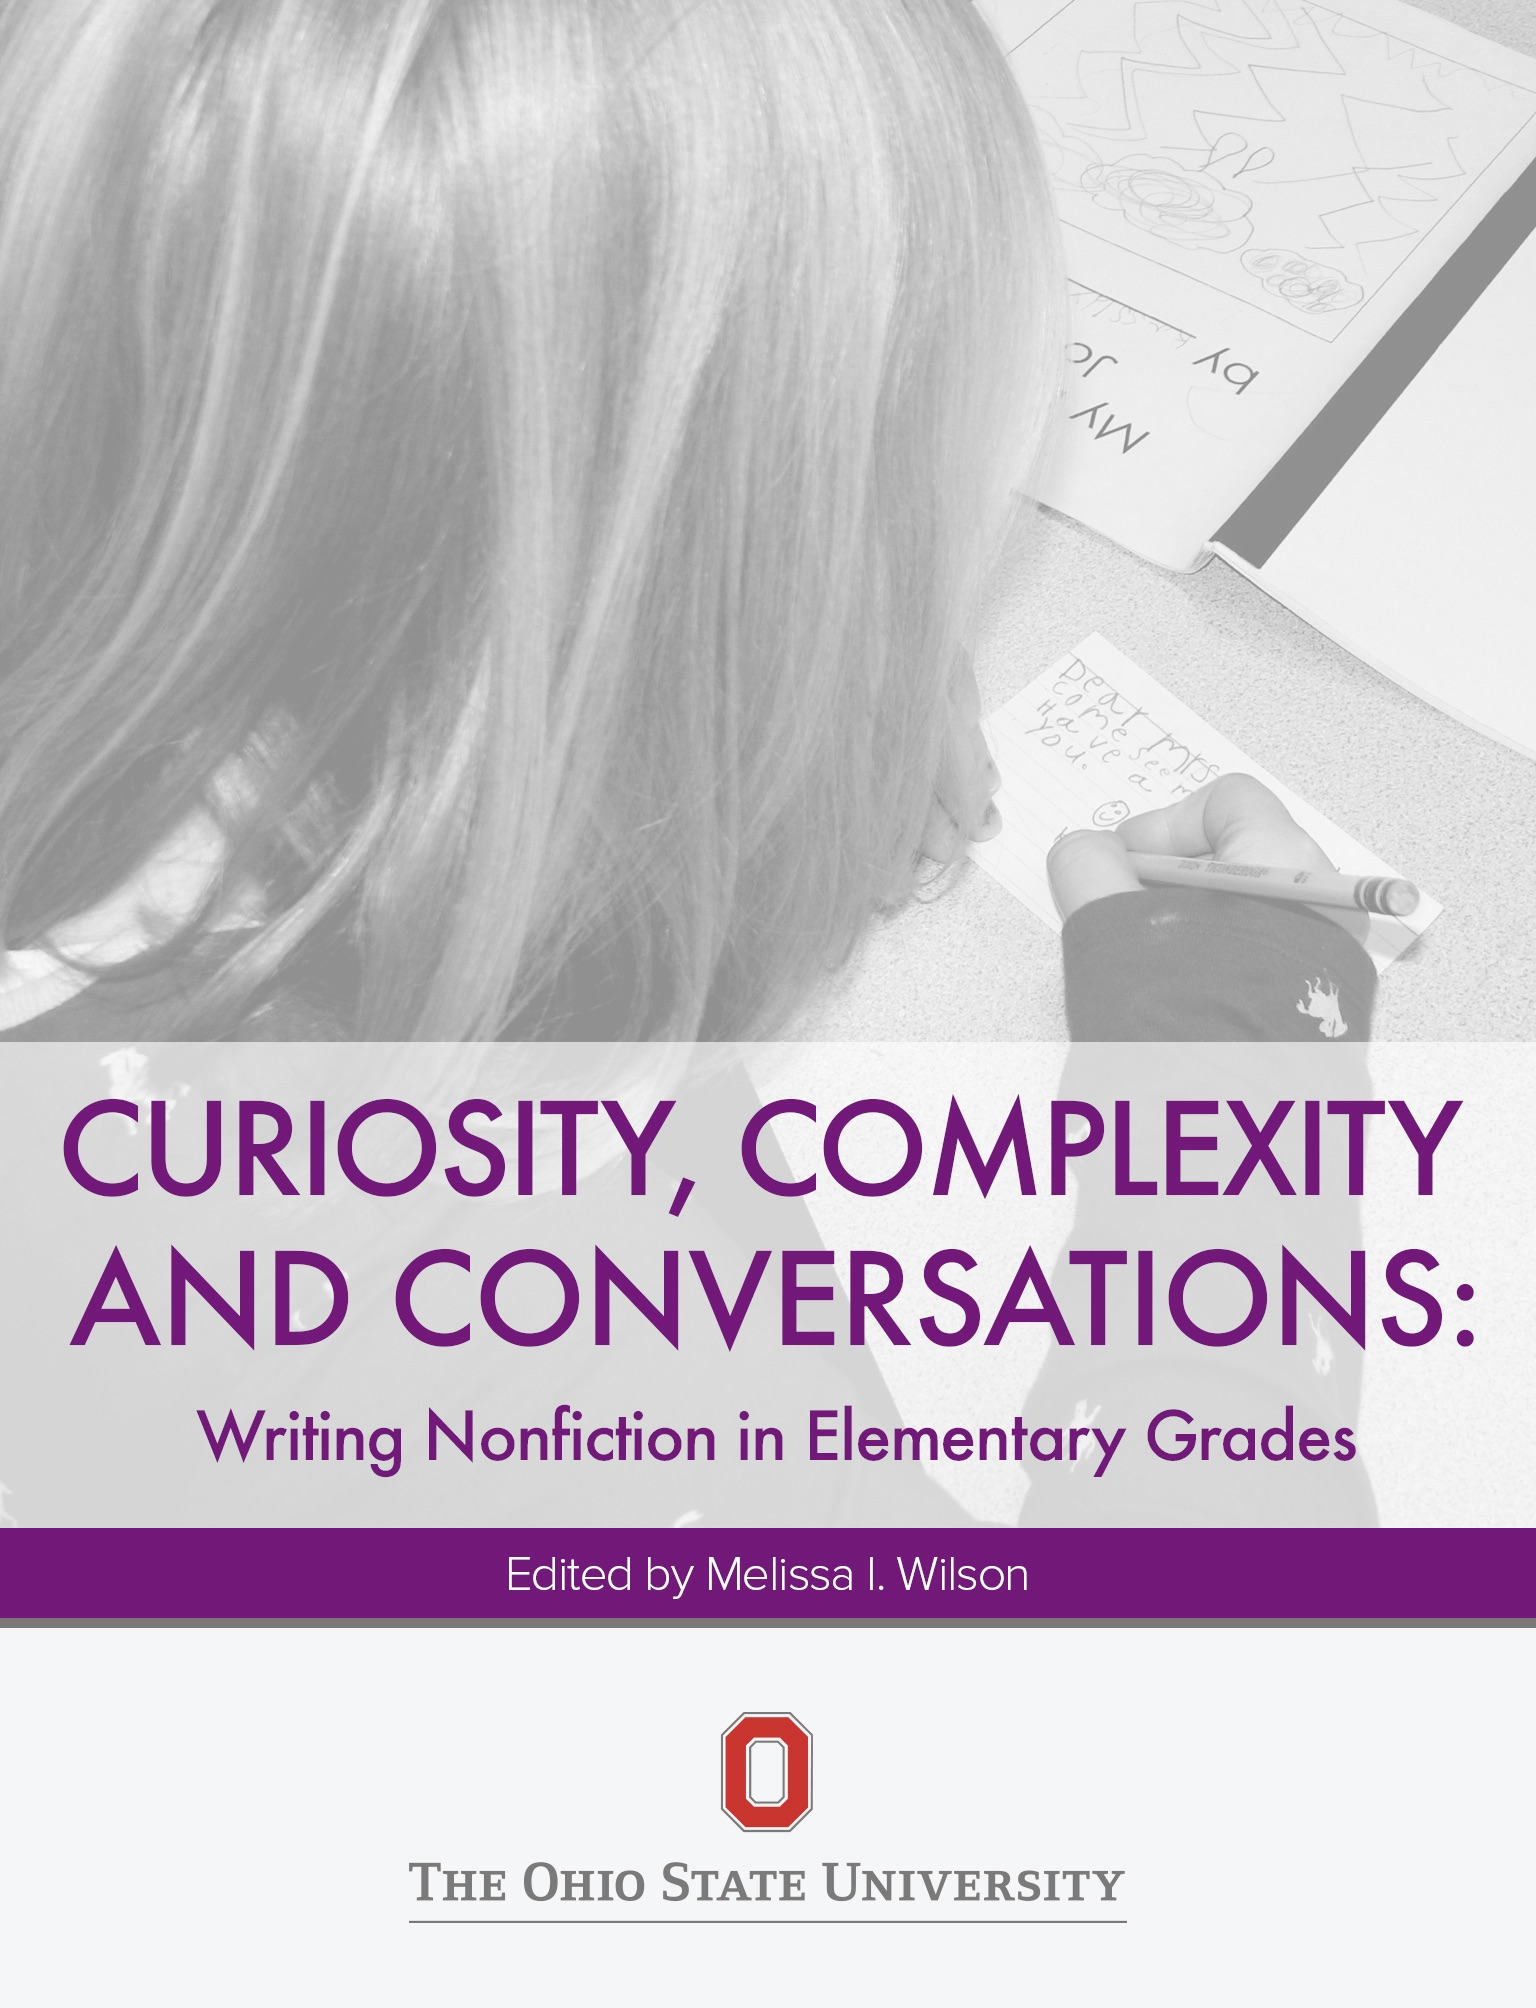 Curiosity, Complexity and Conversations